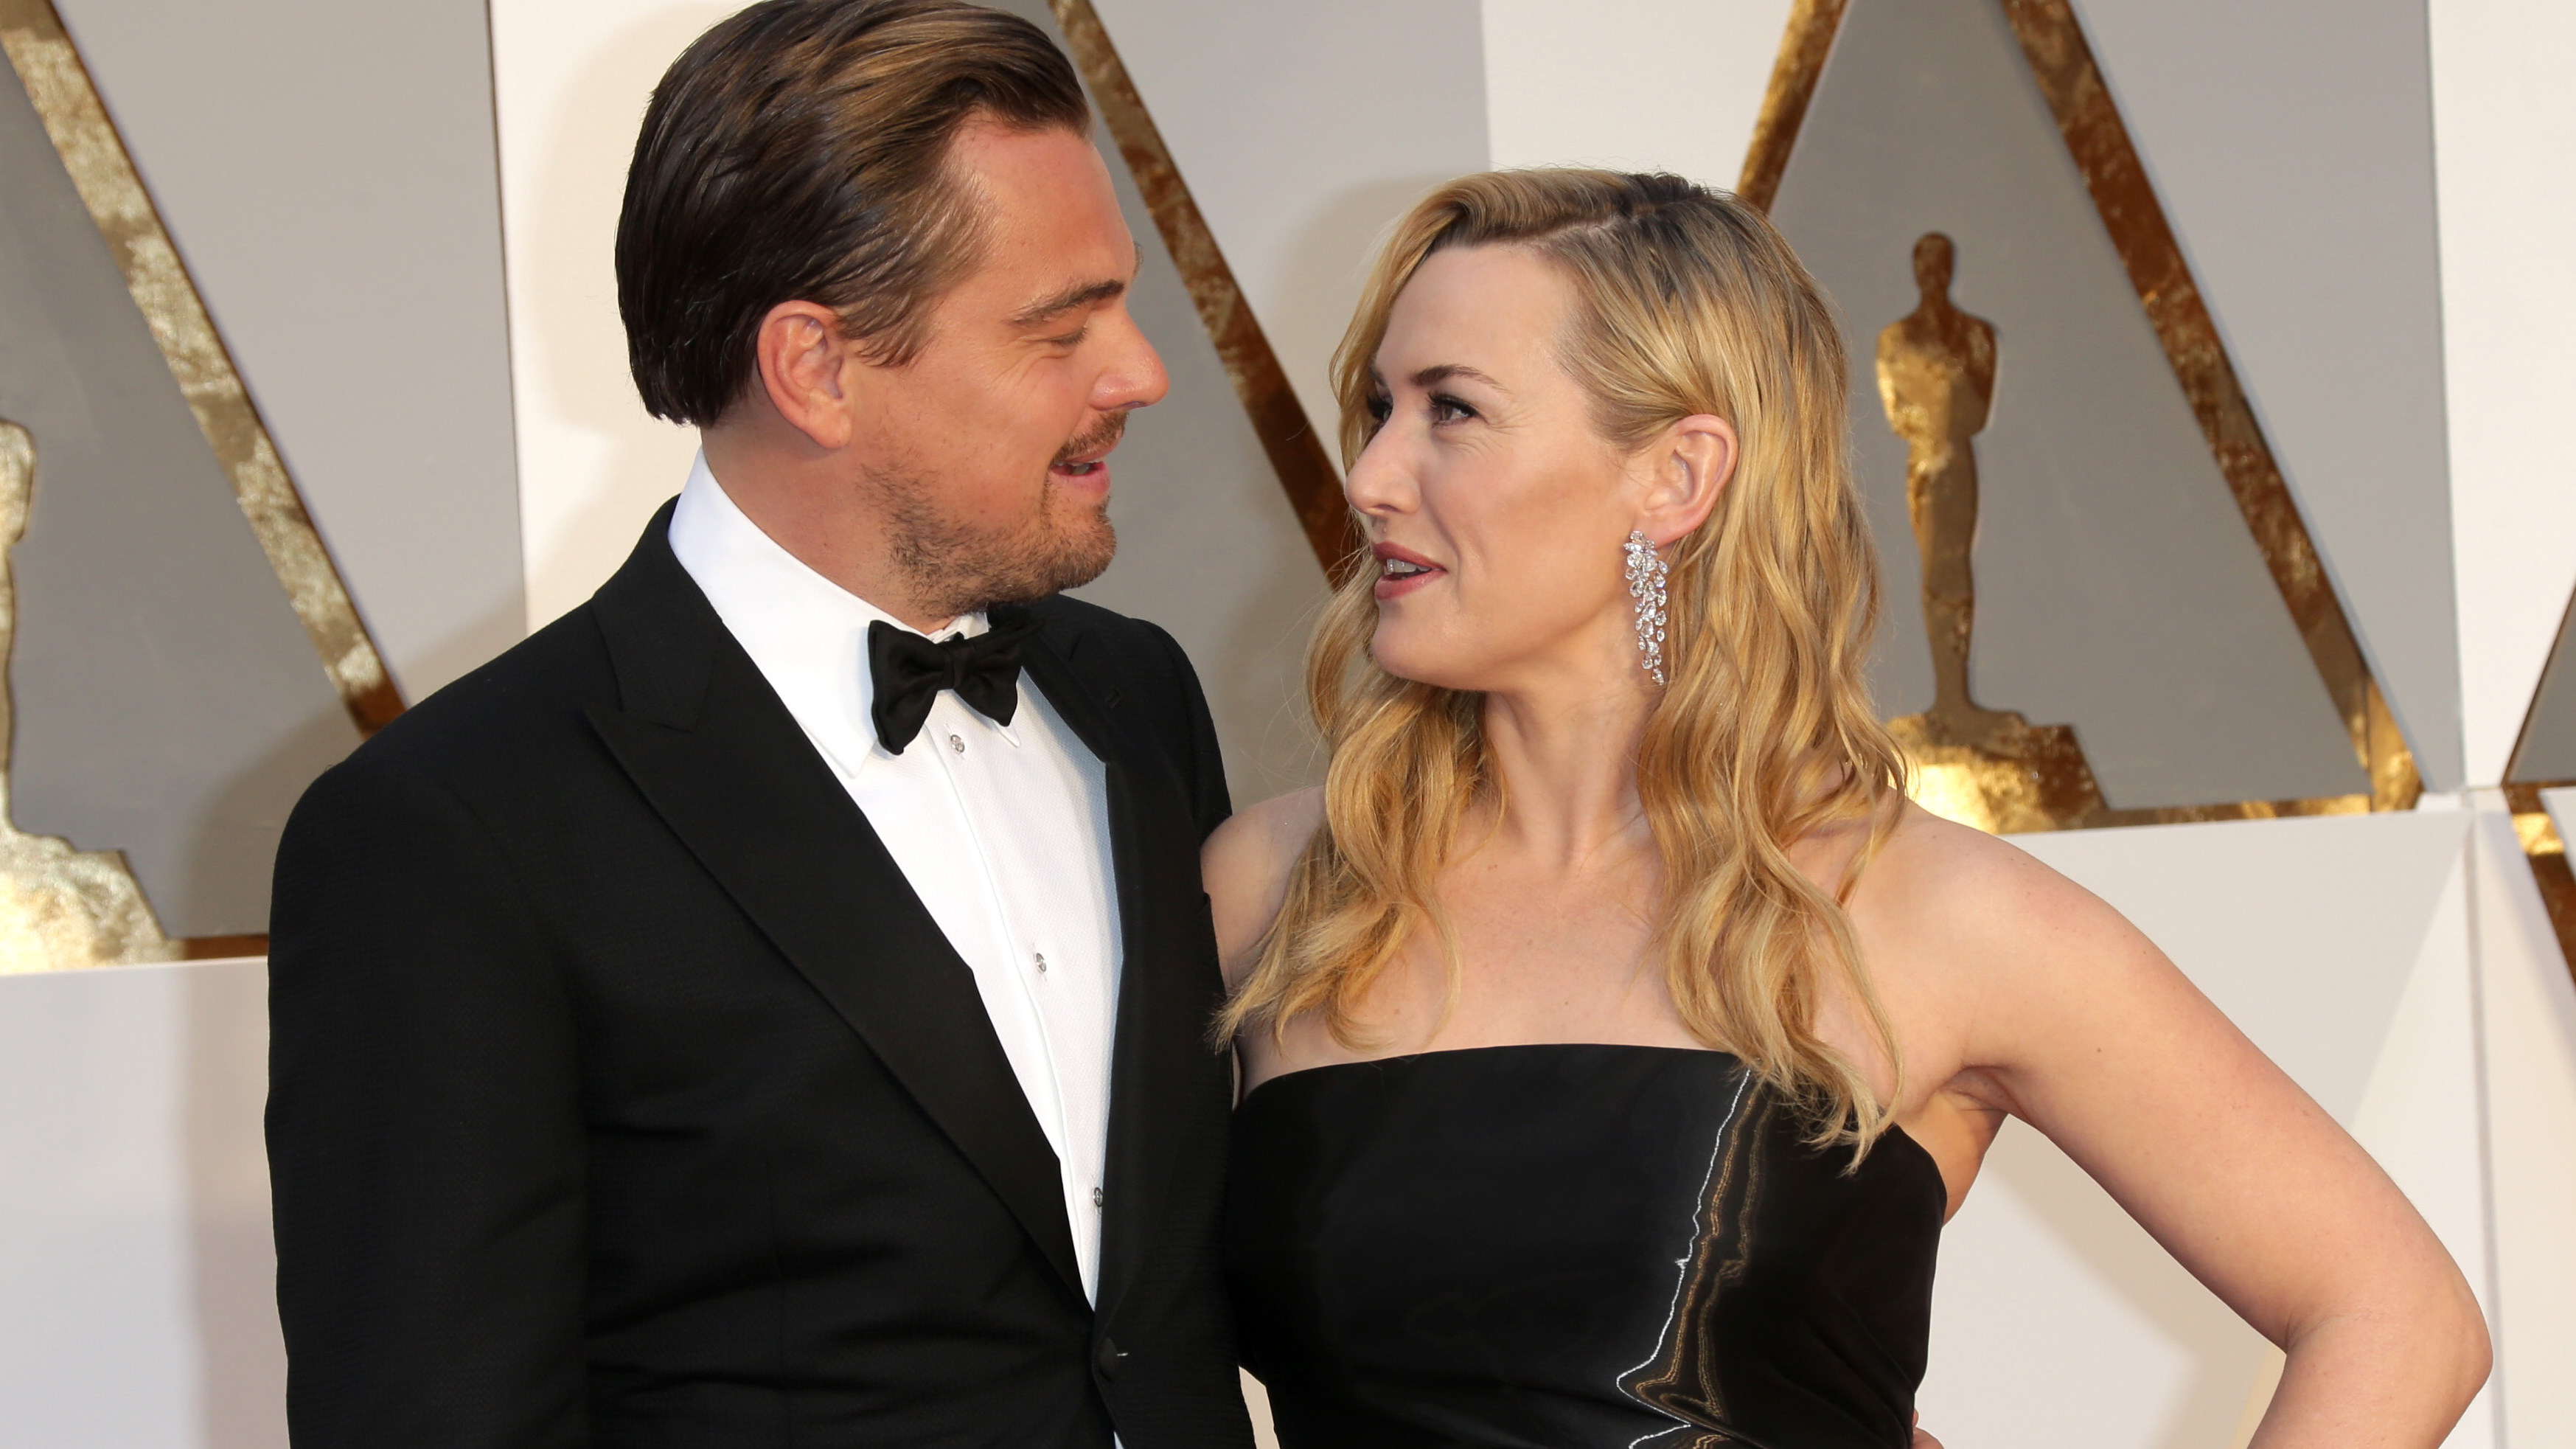 Kate Winslet & Leonardo DiCaprio's best BFF moments, revisited